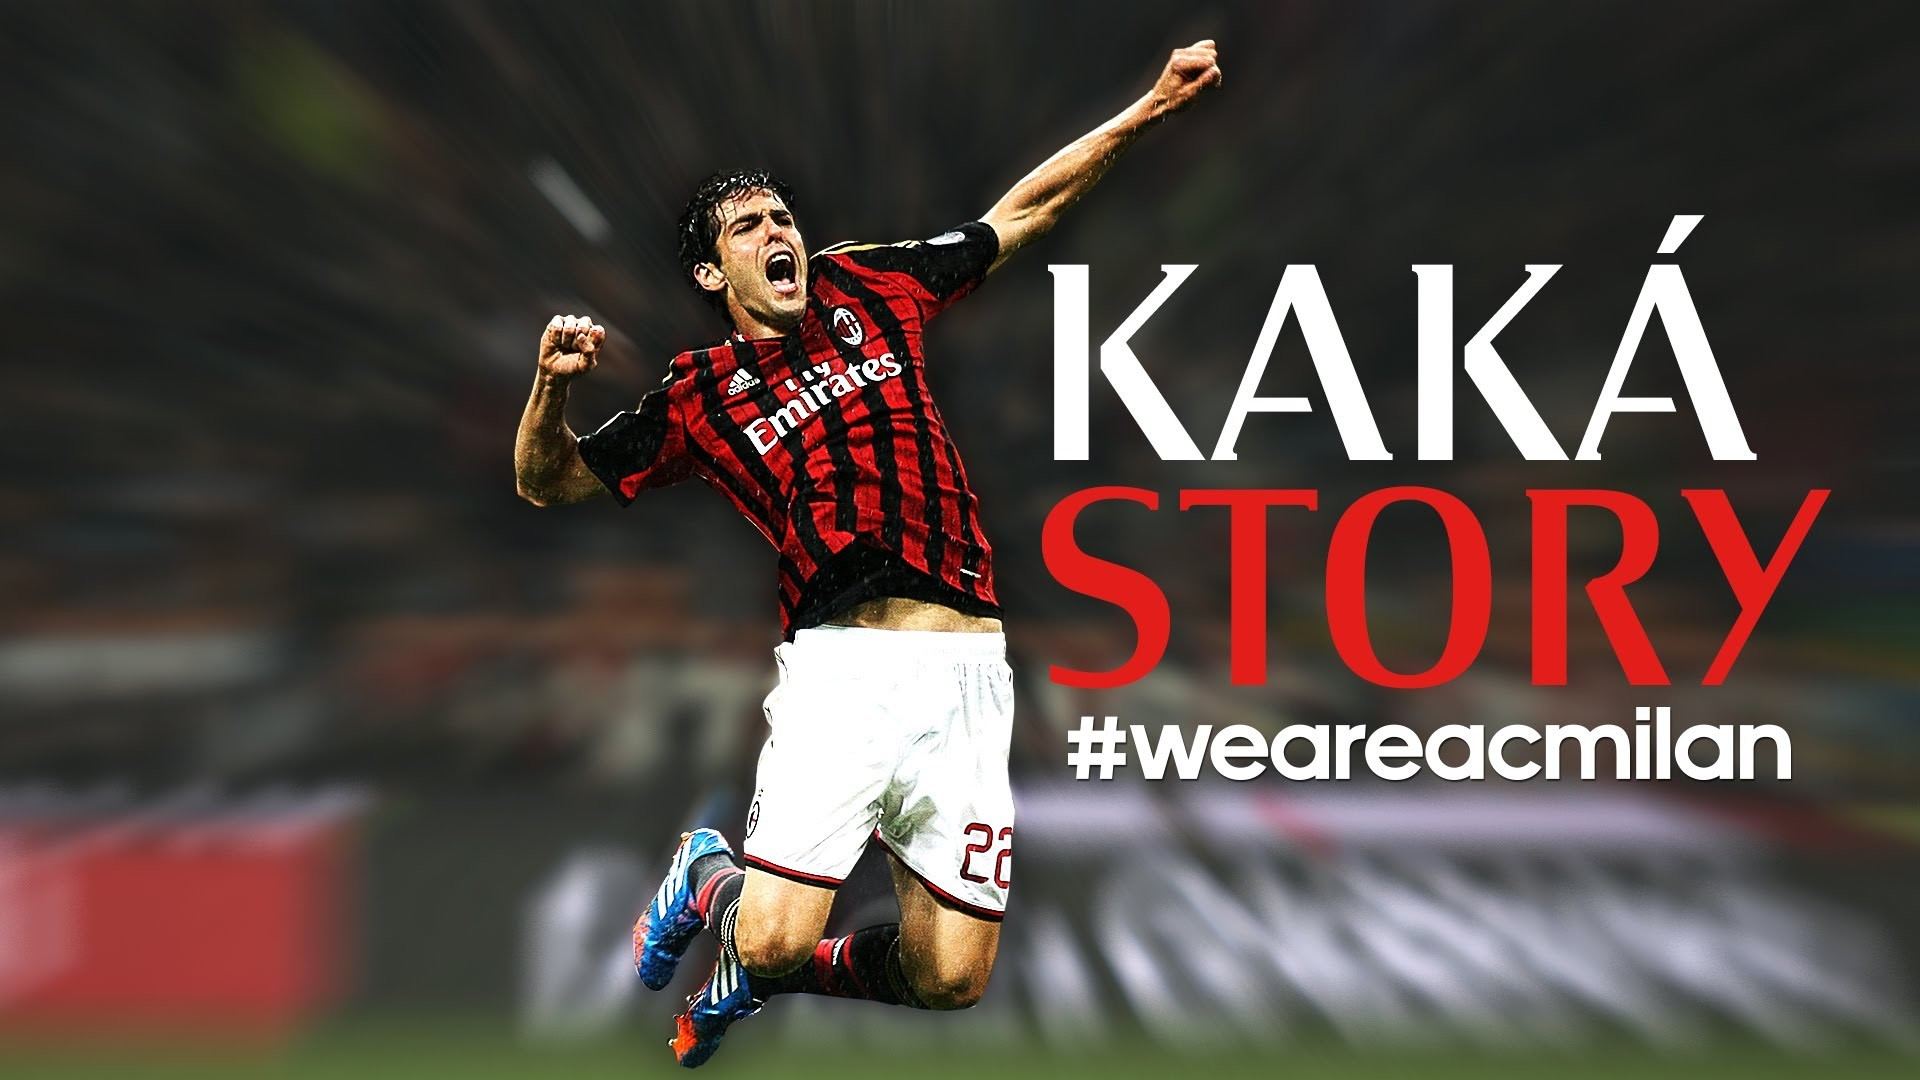 Kaka Hd Wallpapers 66 Images